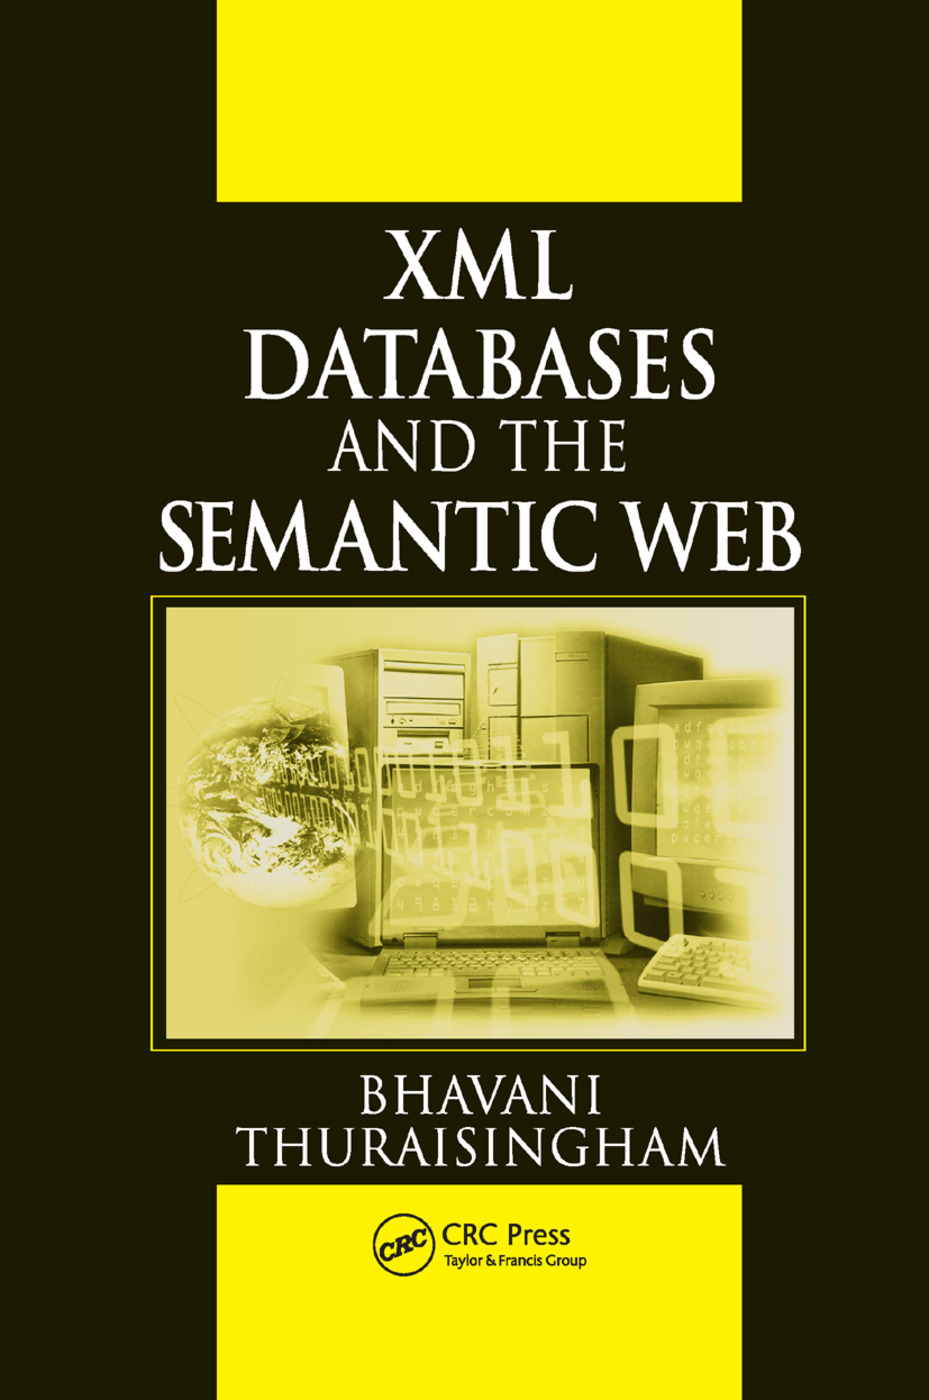 XML Databases and the Semantic Web: 1st Edition (Paperback) book cover